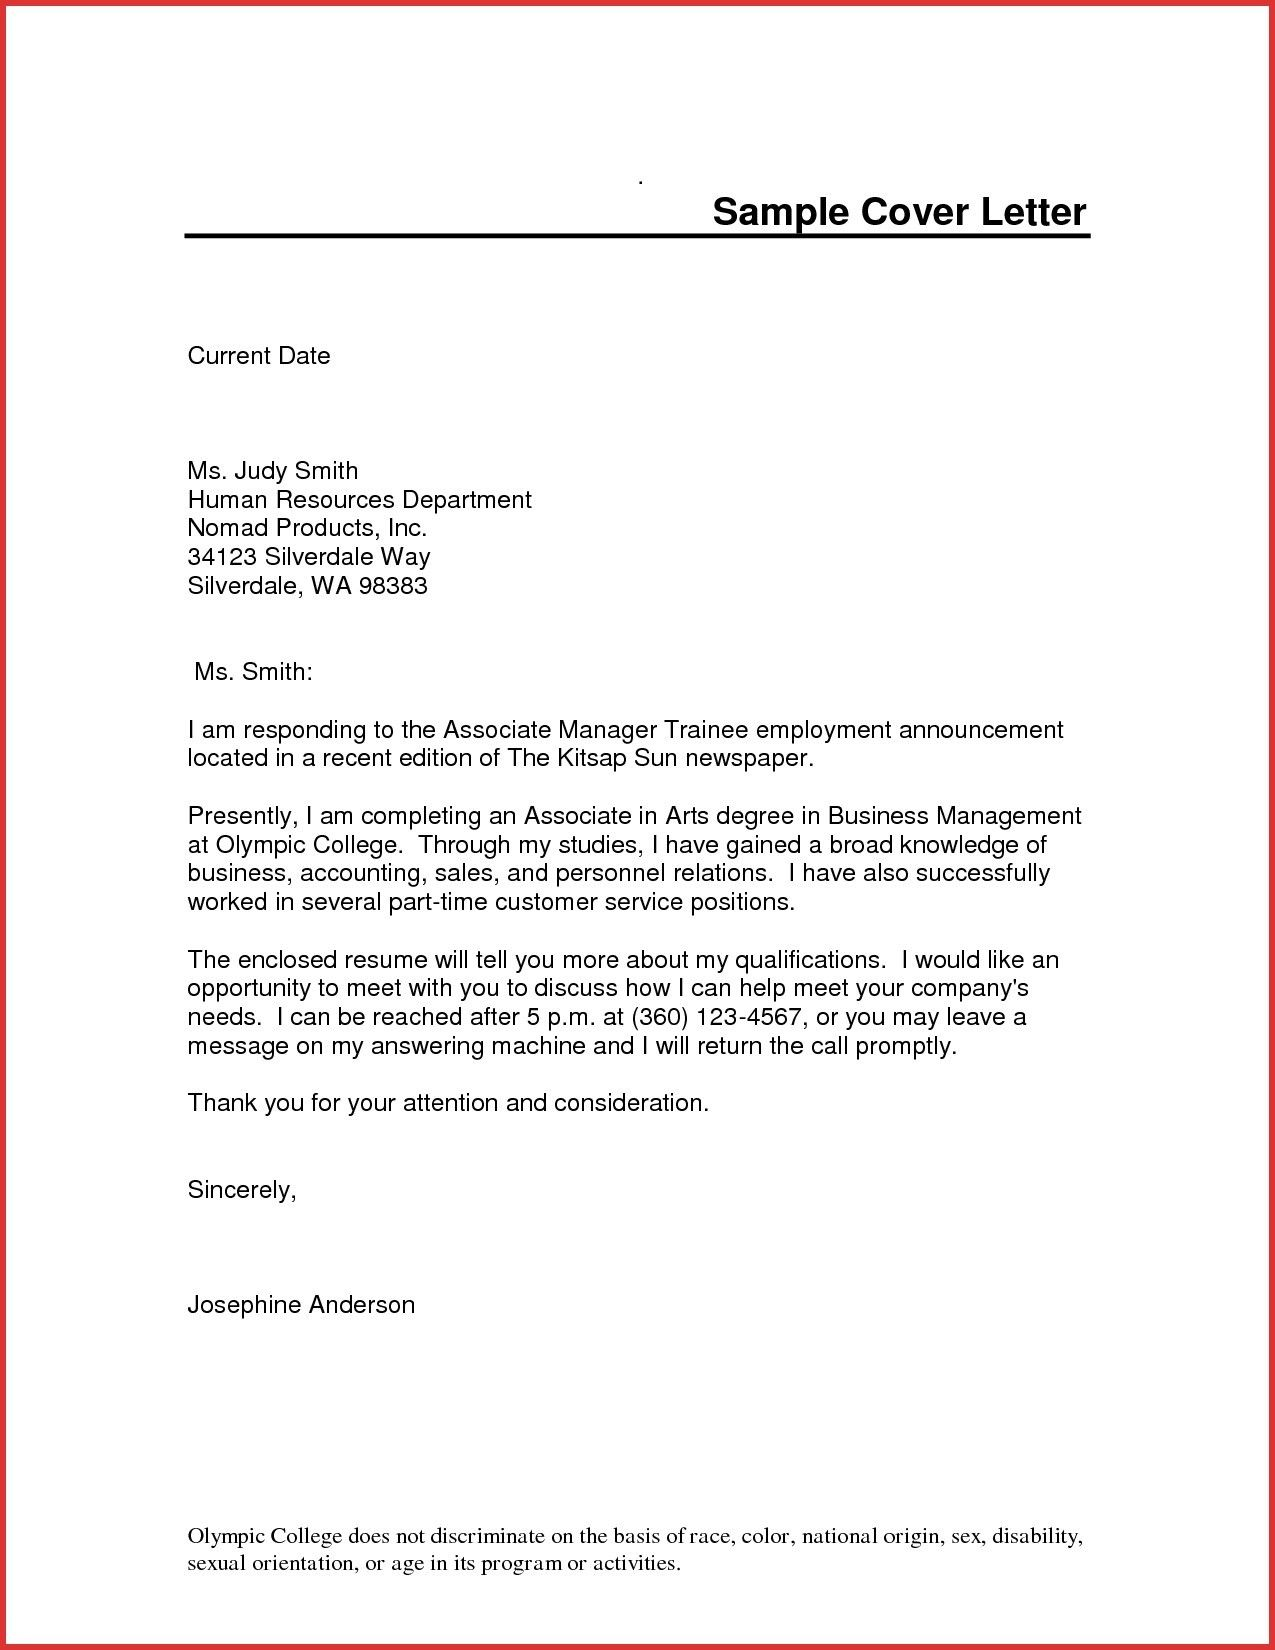 Valid Cover Letter For Marketing Executive Job Resume Cover